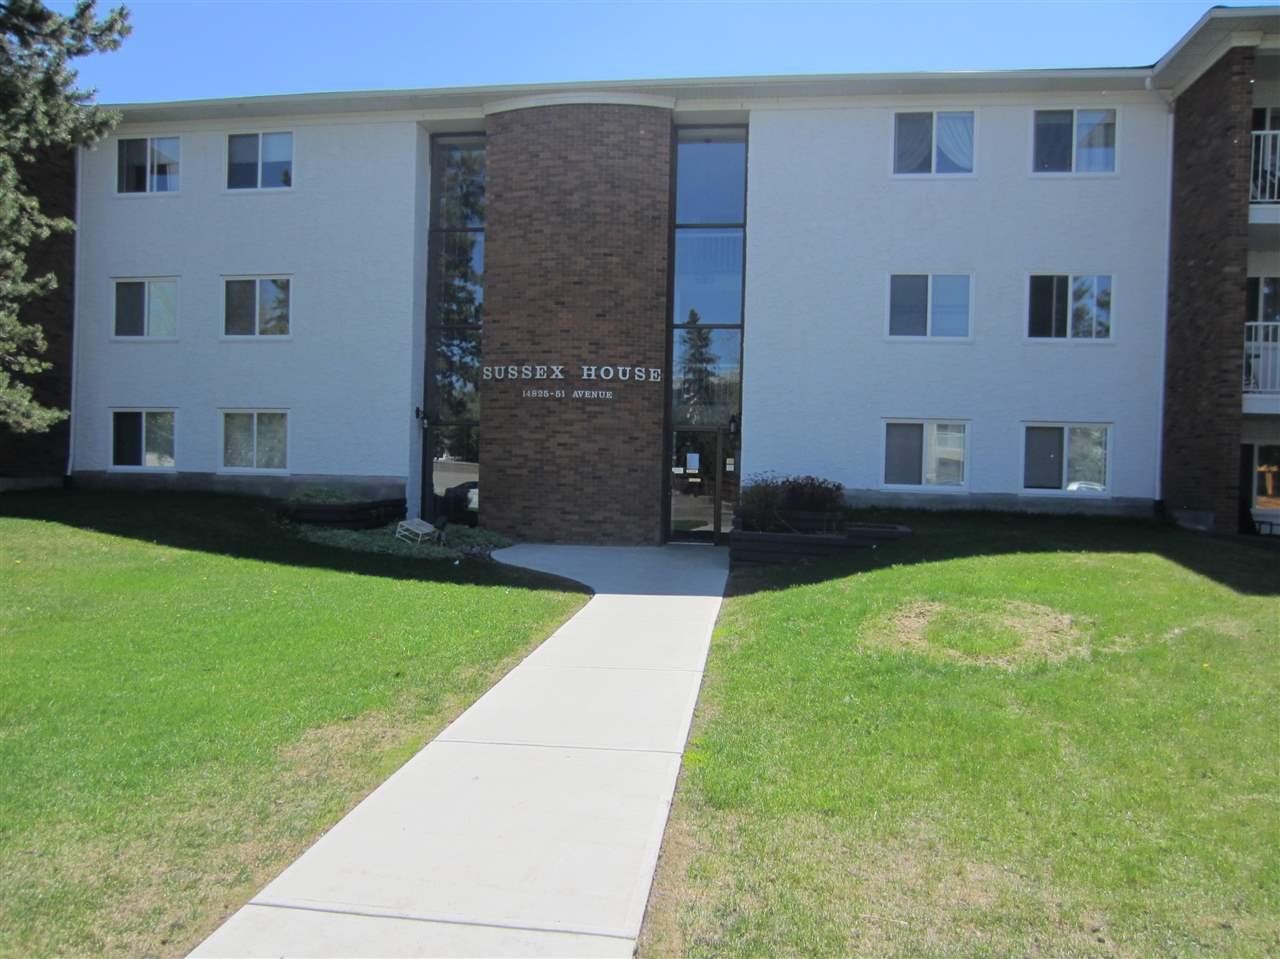 102 14825 51 Avenue NW, 2 bed, 1.1 bath, at $133,888